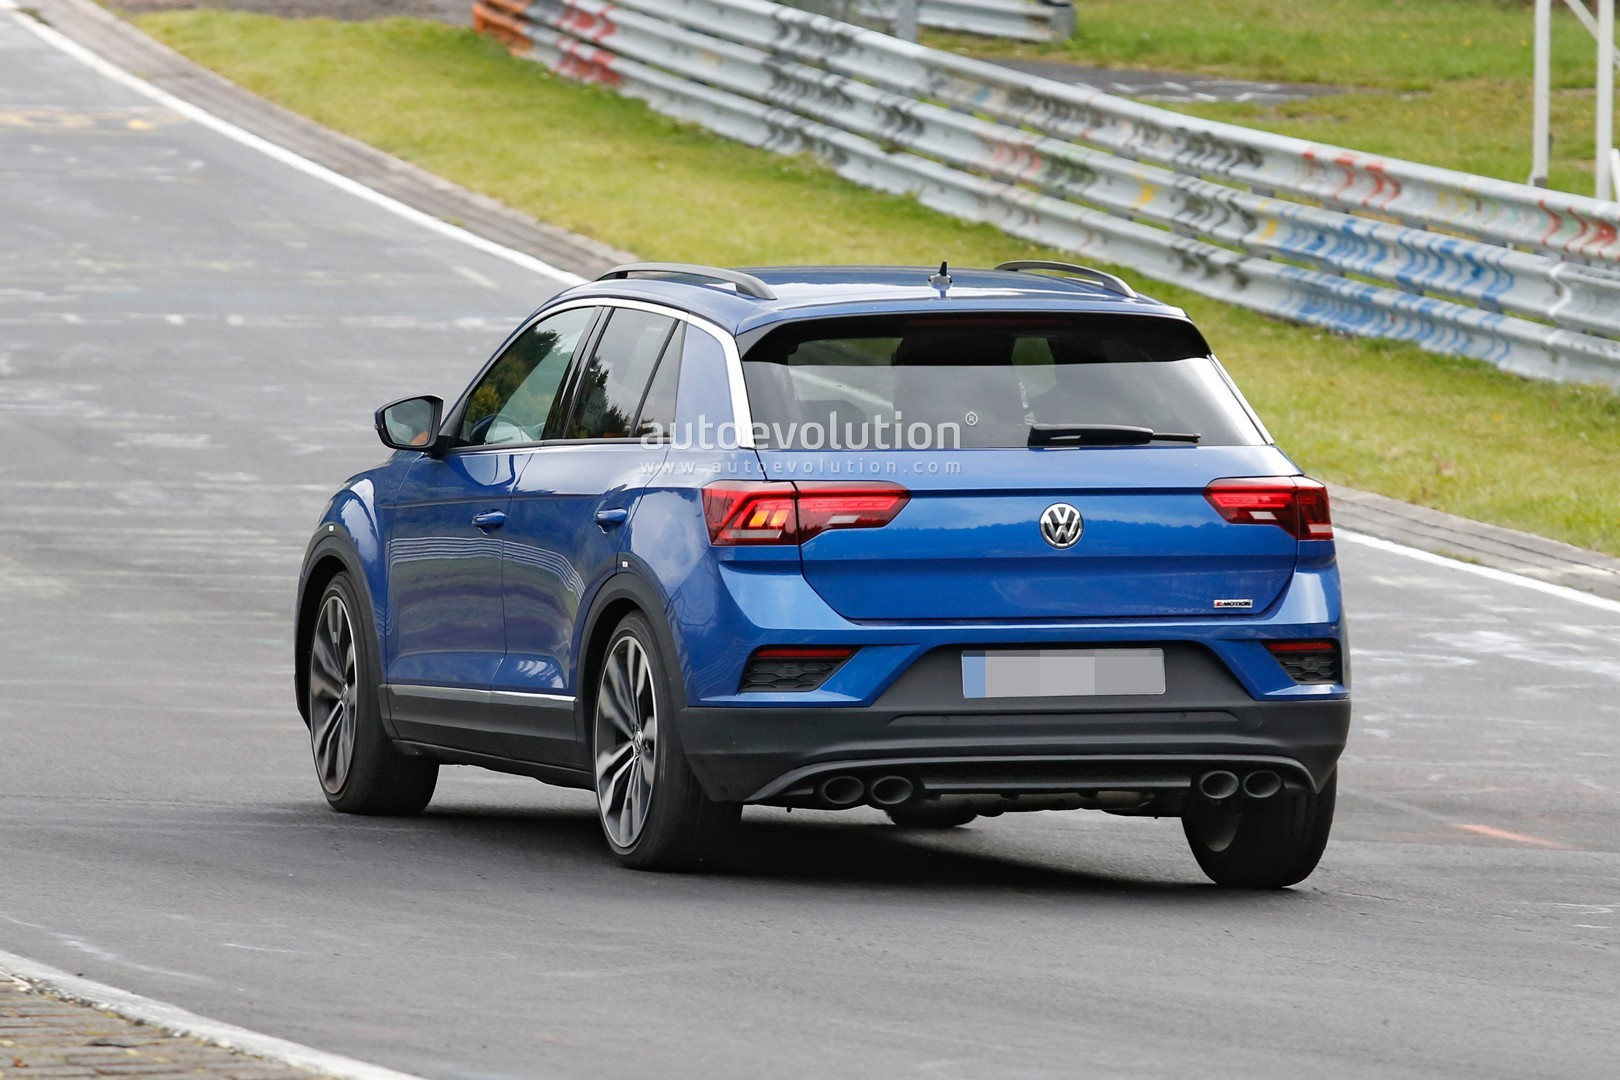 spyshots vw t roc r with quad exhaust likely has 300 hp. Black Bedroom Furniture Sets. Home Design Ideas